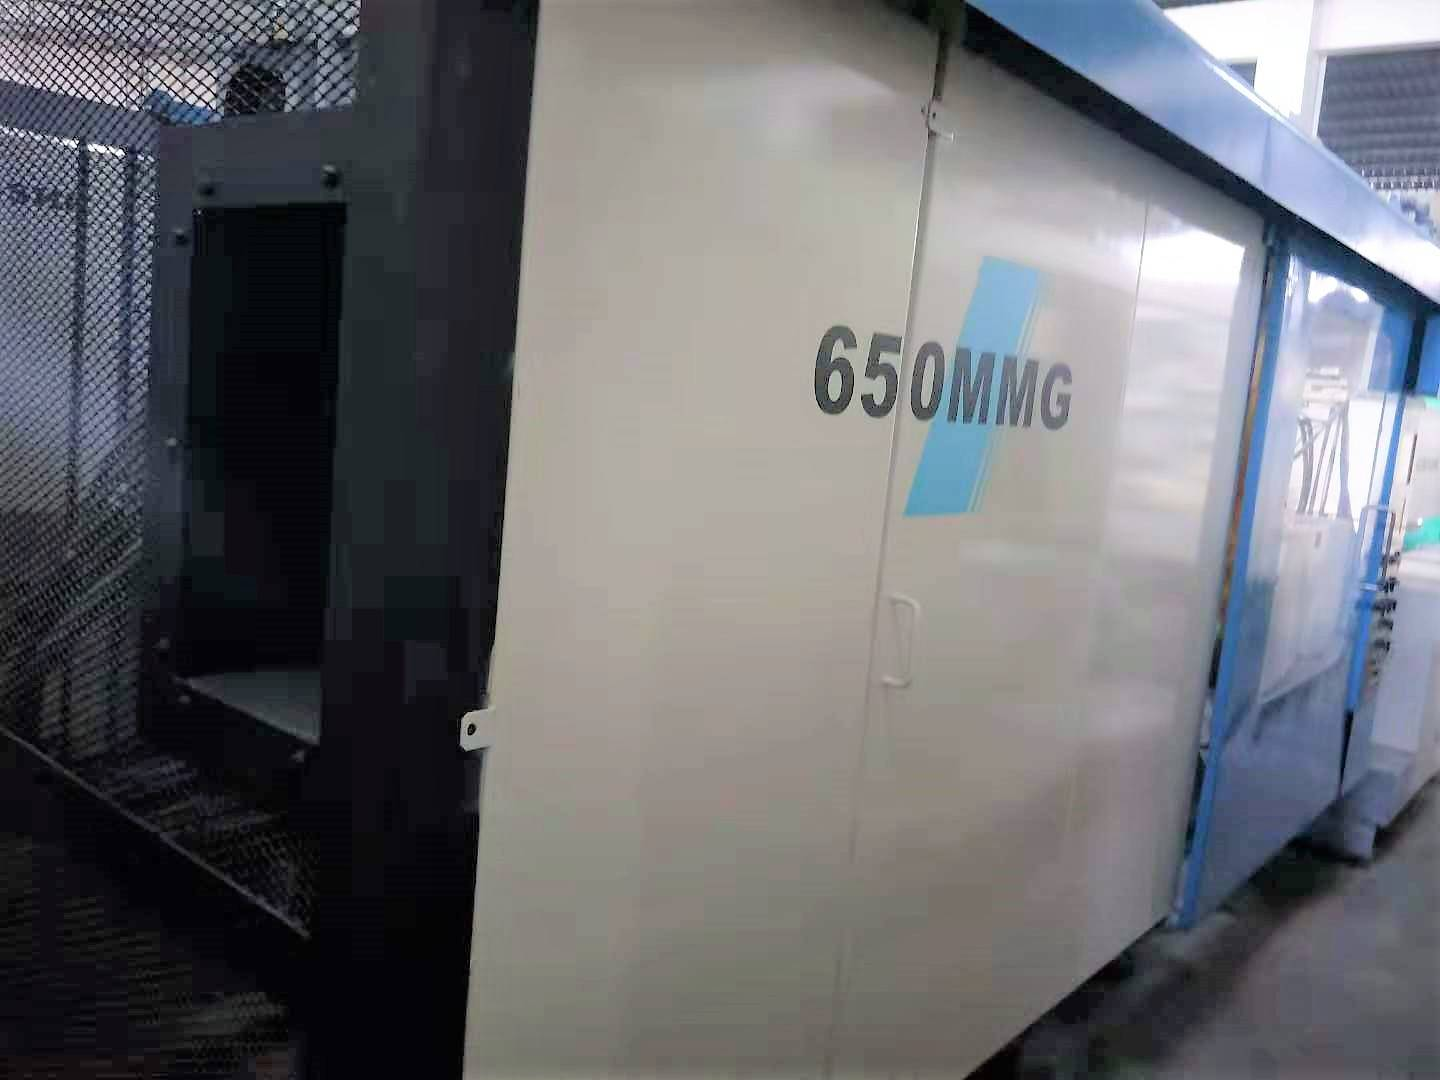 Mitsubishi 650t 650MMG used Injection Molding Machine Featured Image